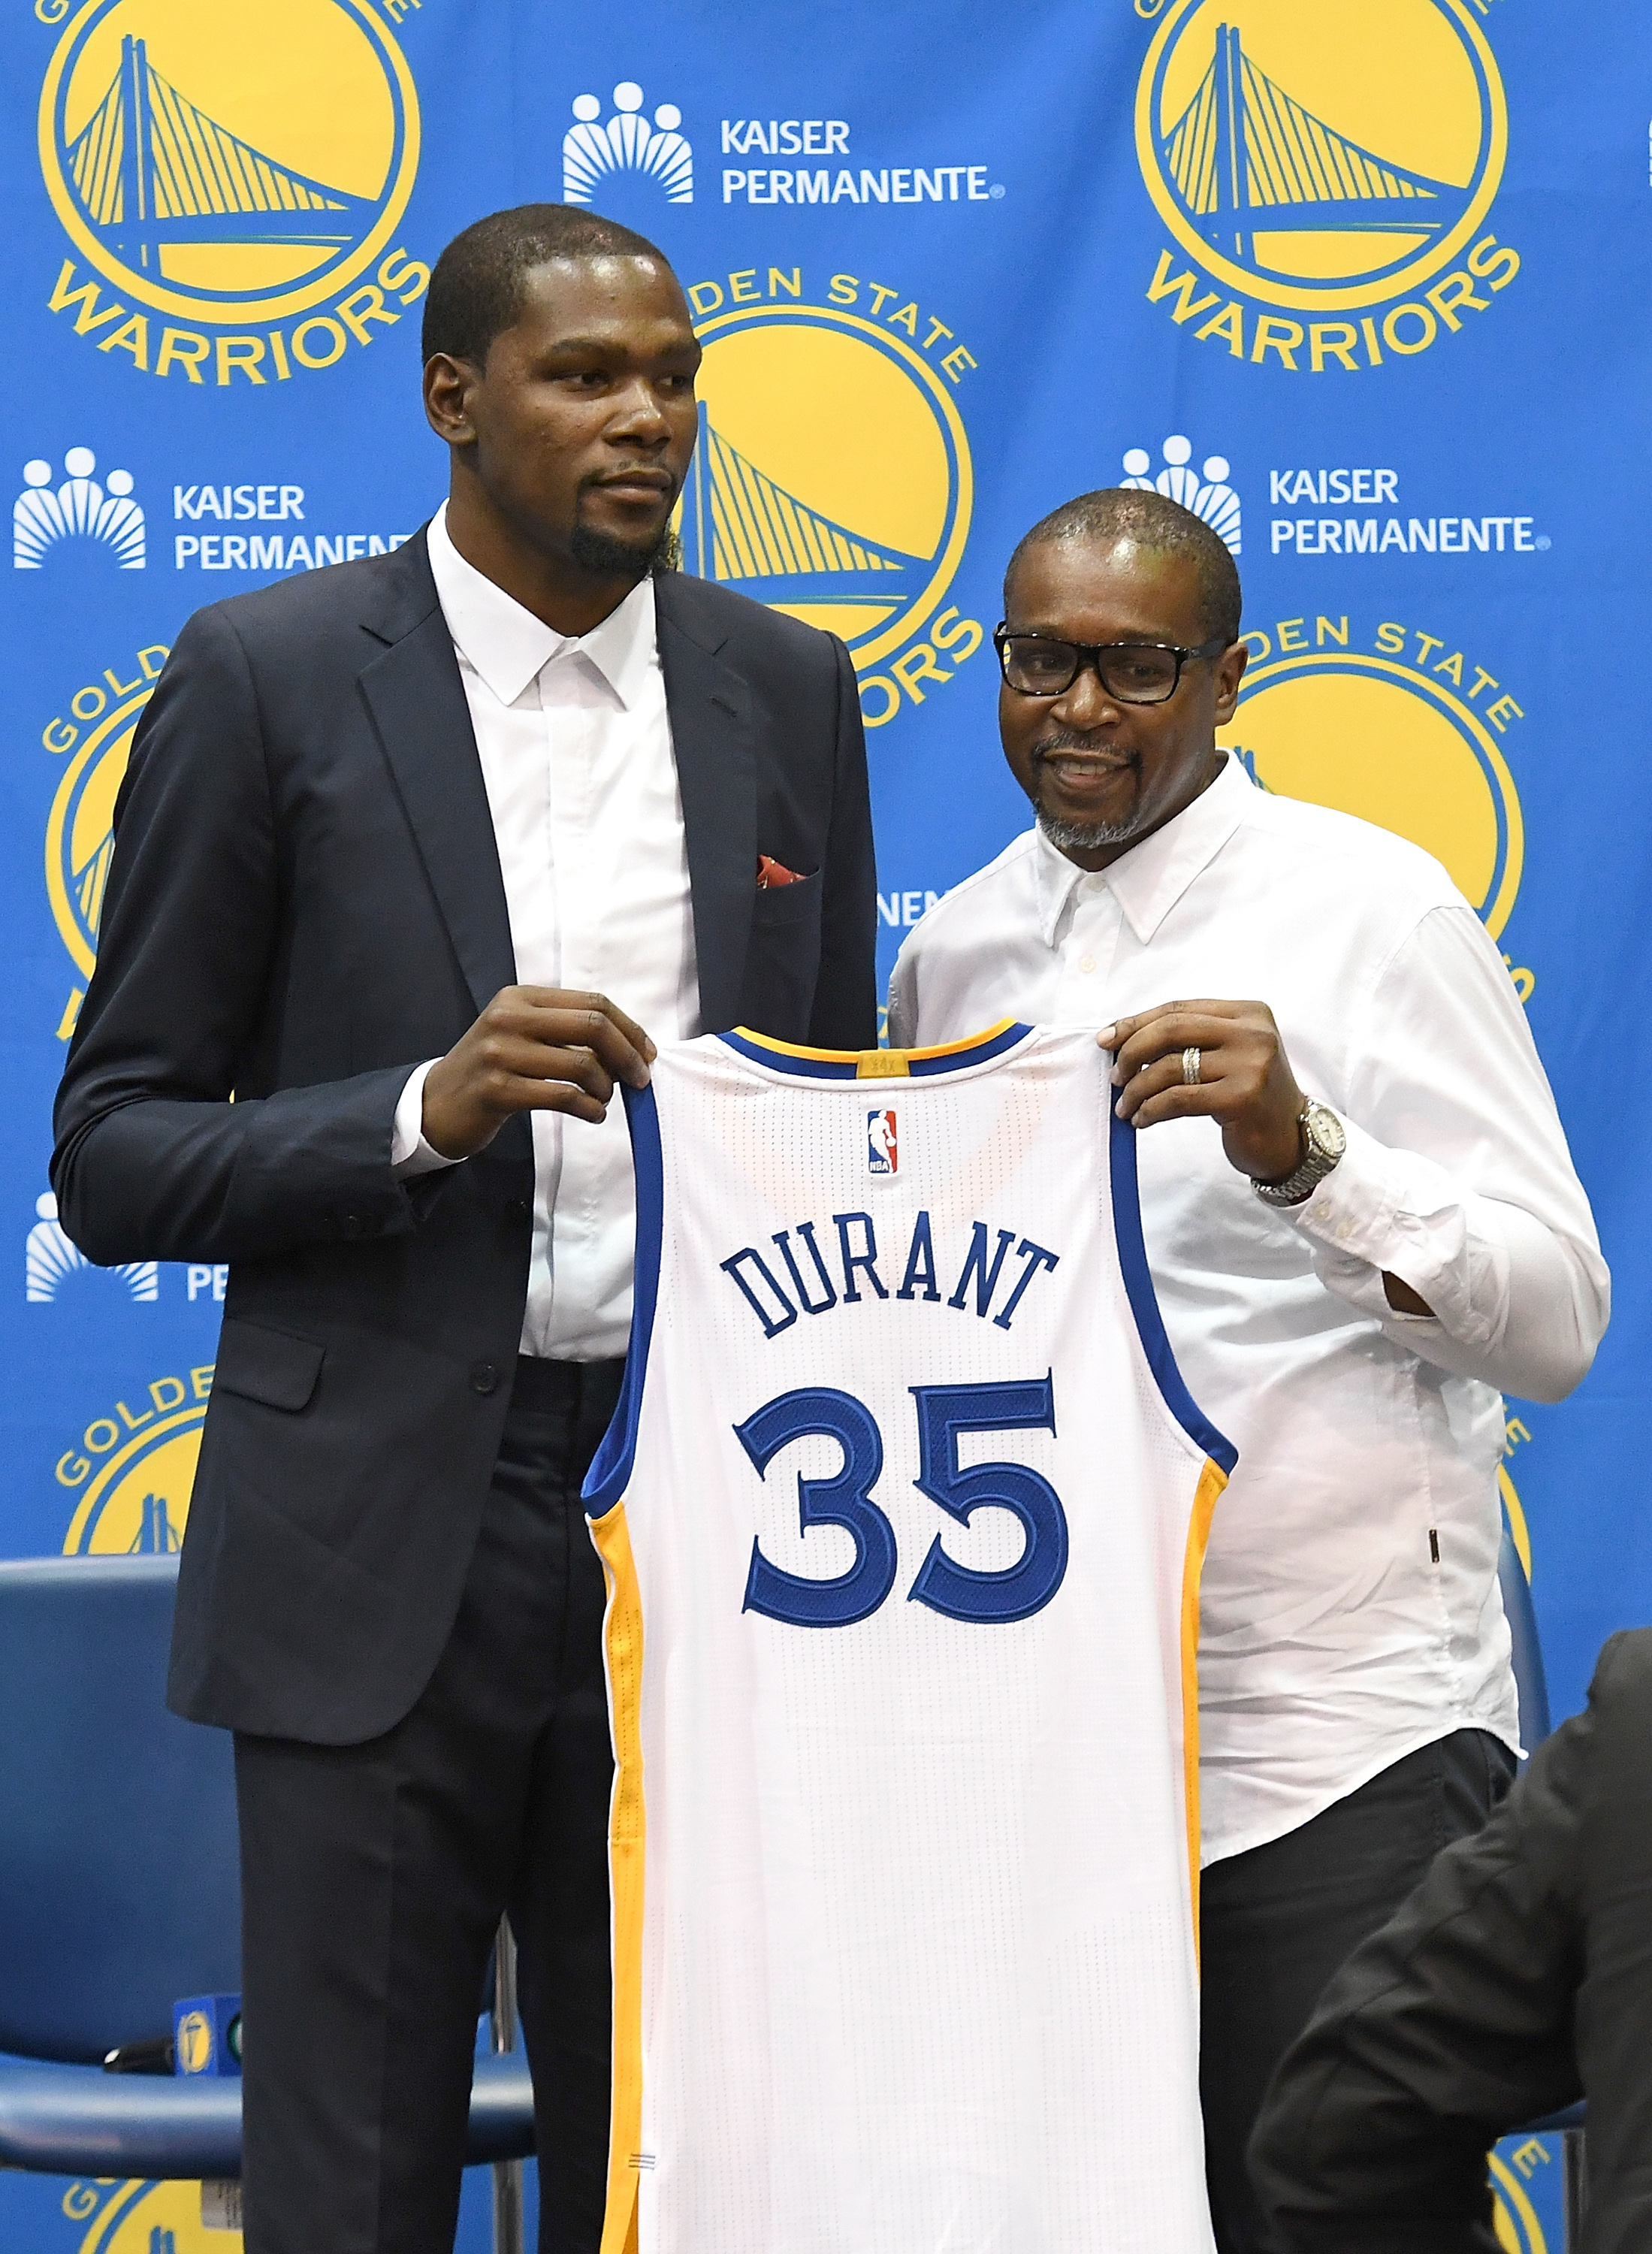 OAKLAND, CA - JULY 07: Kevin Durant #35 of the Golden State Warriors stands with his father Wayne Pratt during the press conference where Durant was introduced as a member of the Golden State Warriors.